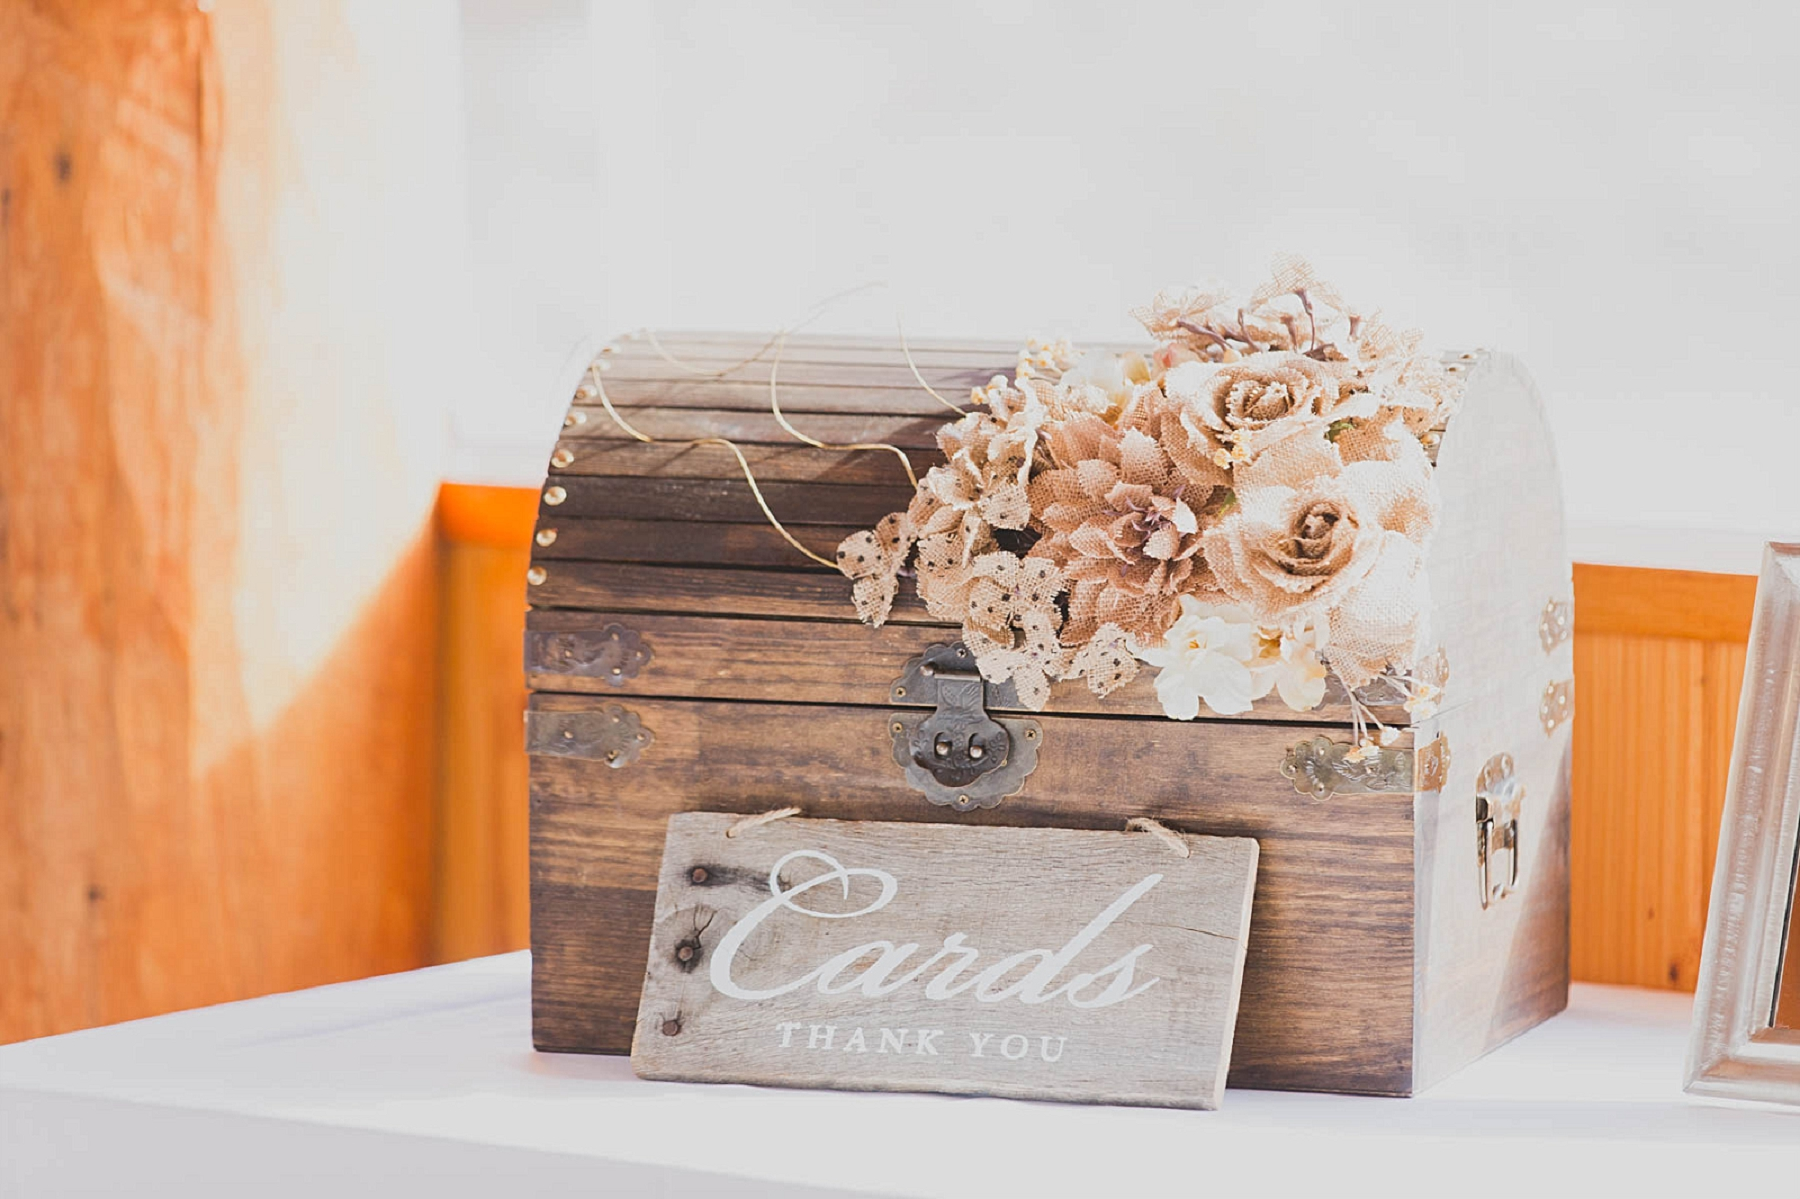 Jennifer_Mooney_photo_glacier_outdoor_center_wedding_montana_fall_elegant_rustic_romantic-74.jpg